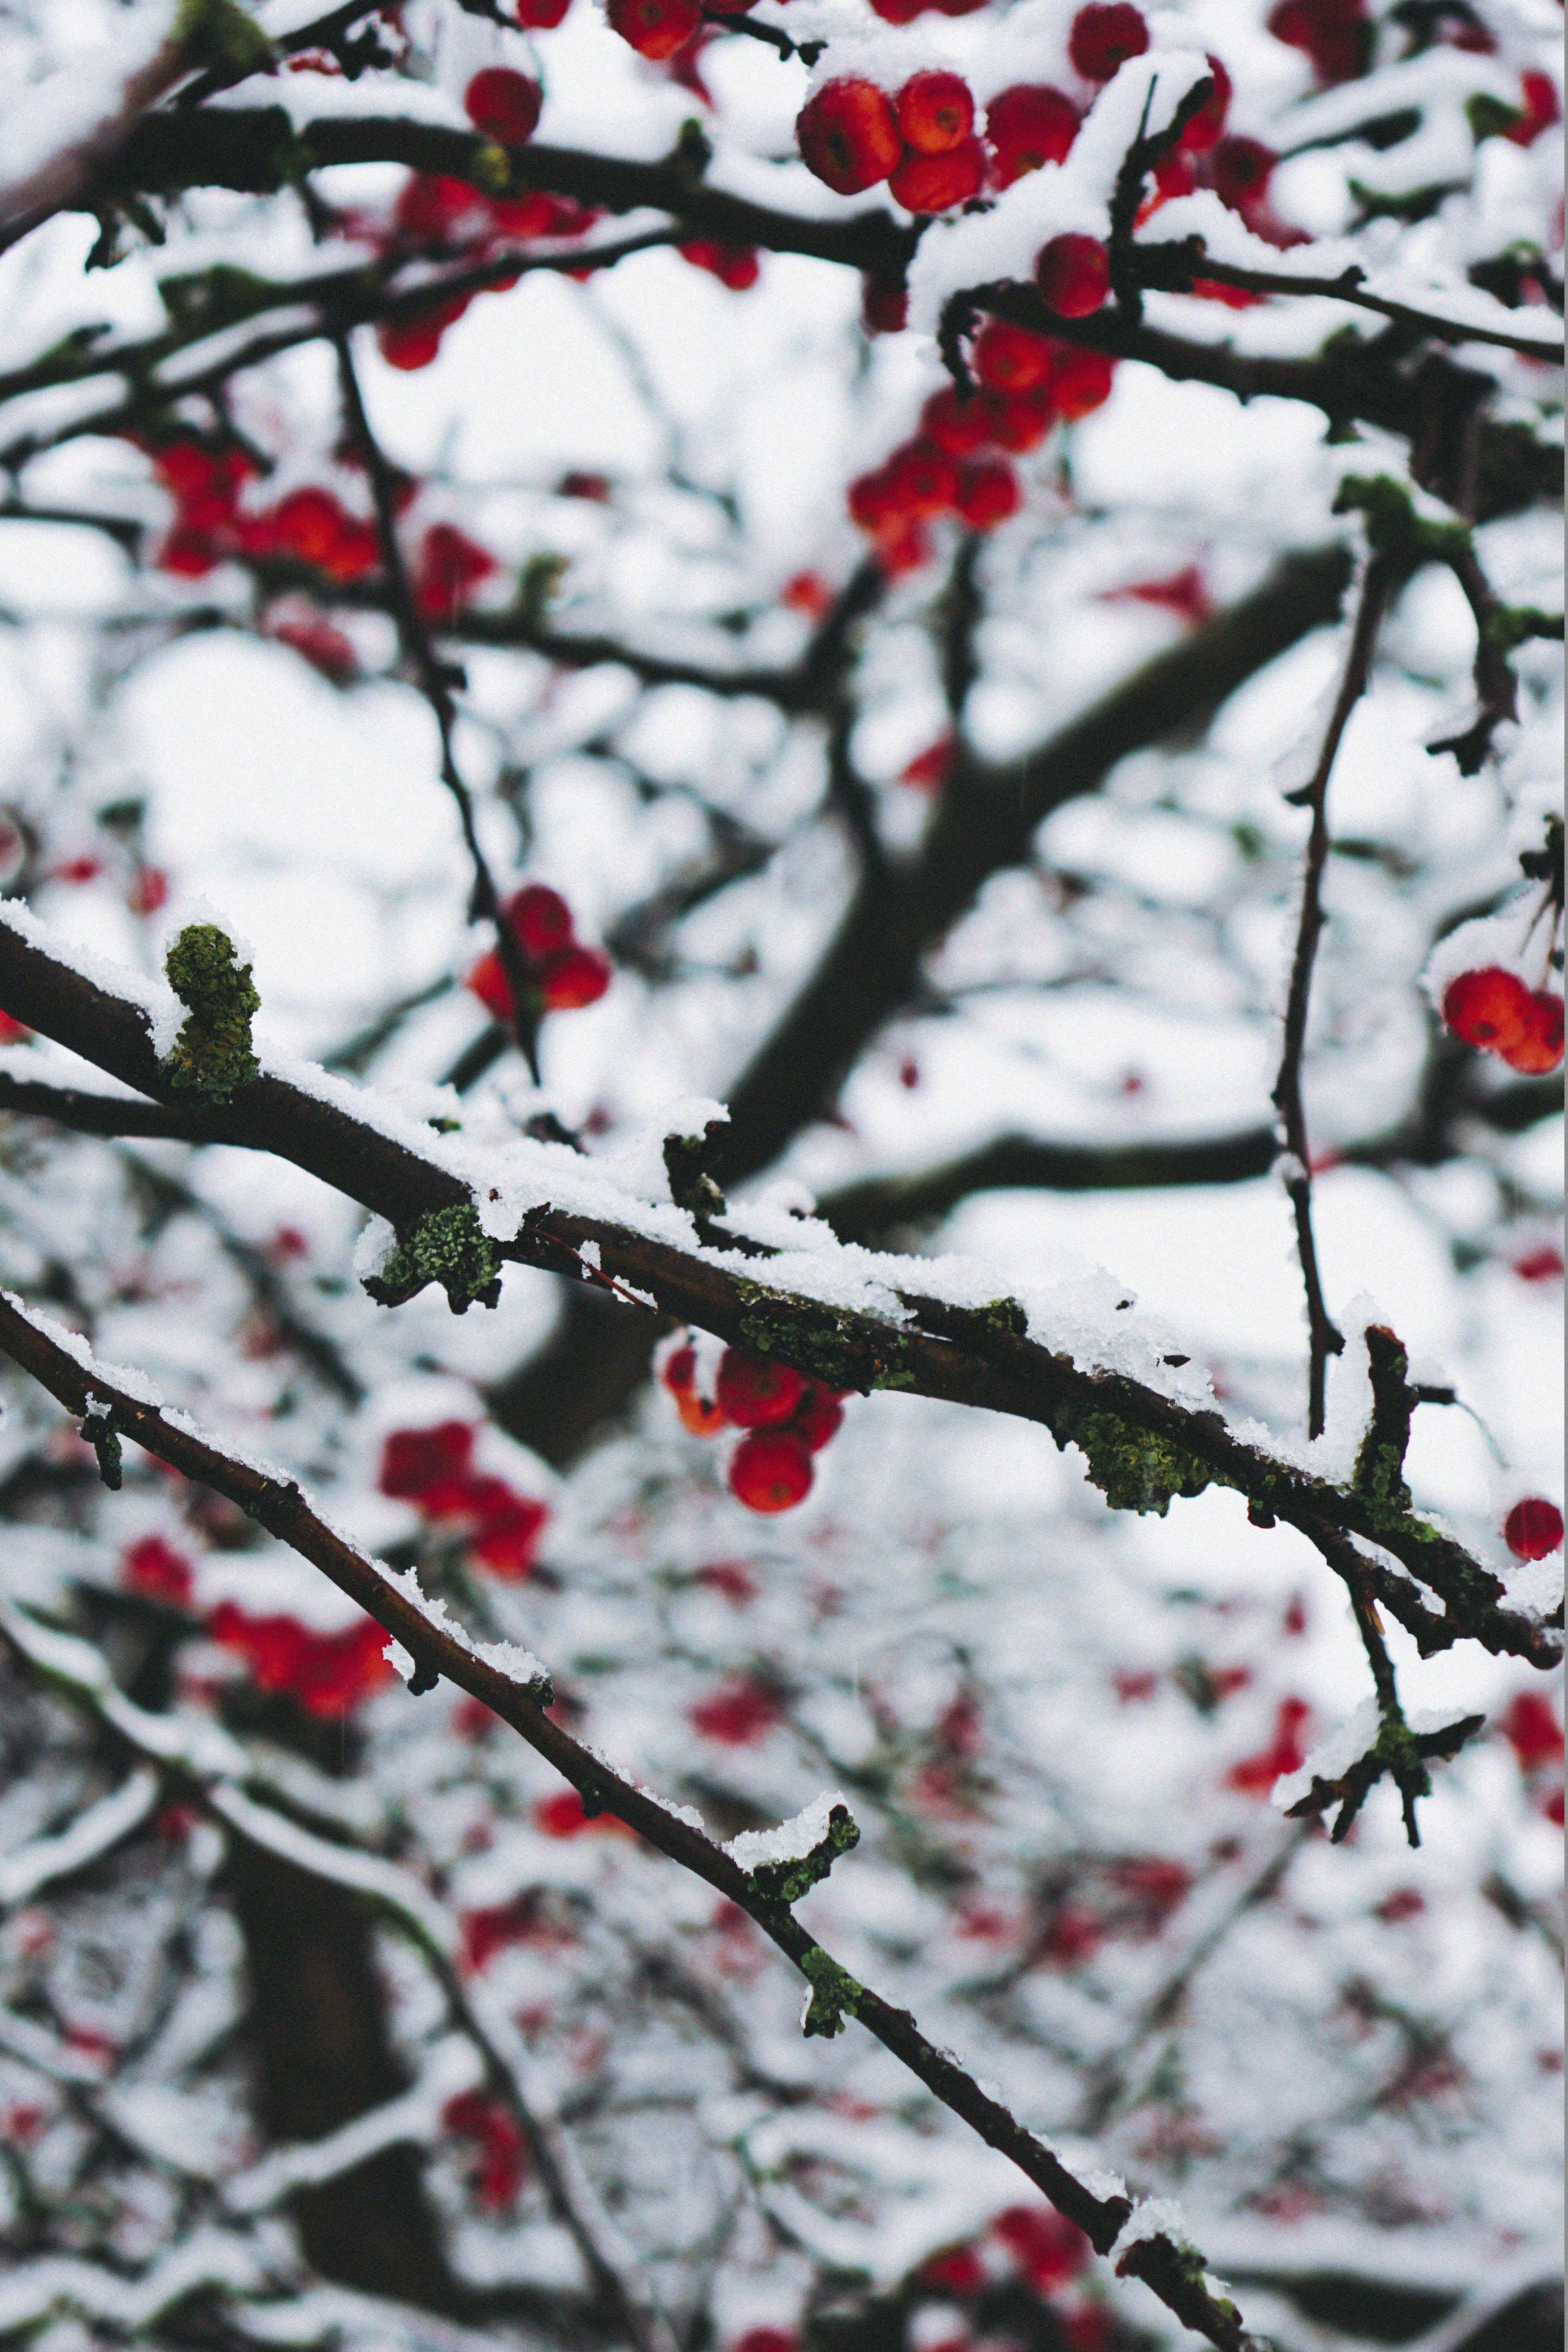 winter photography ideas using natural contrast between bright berries and the snow